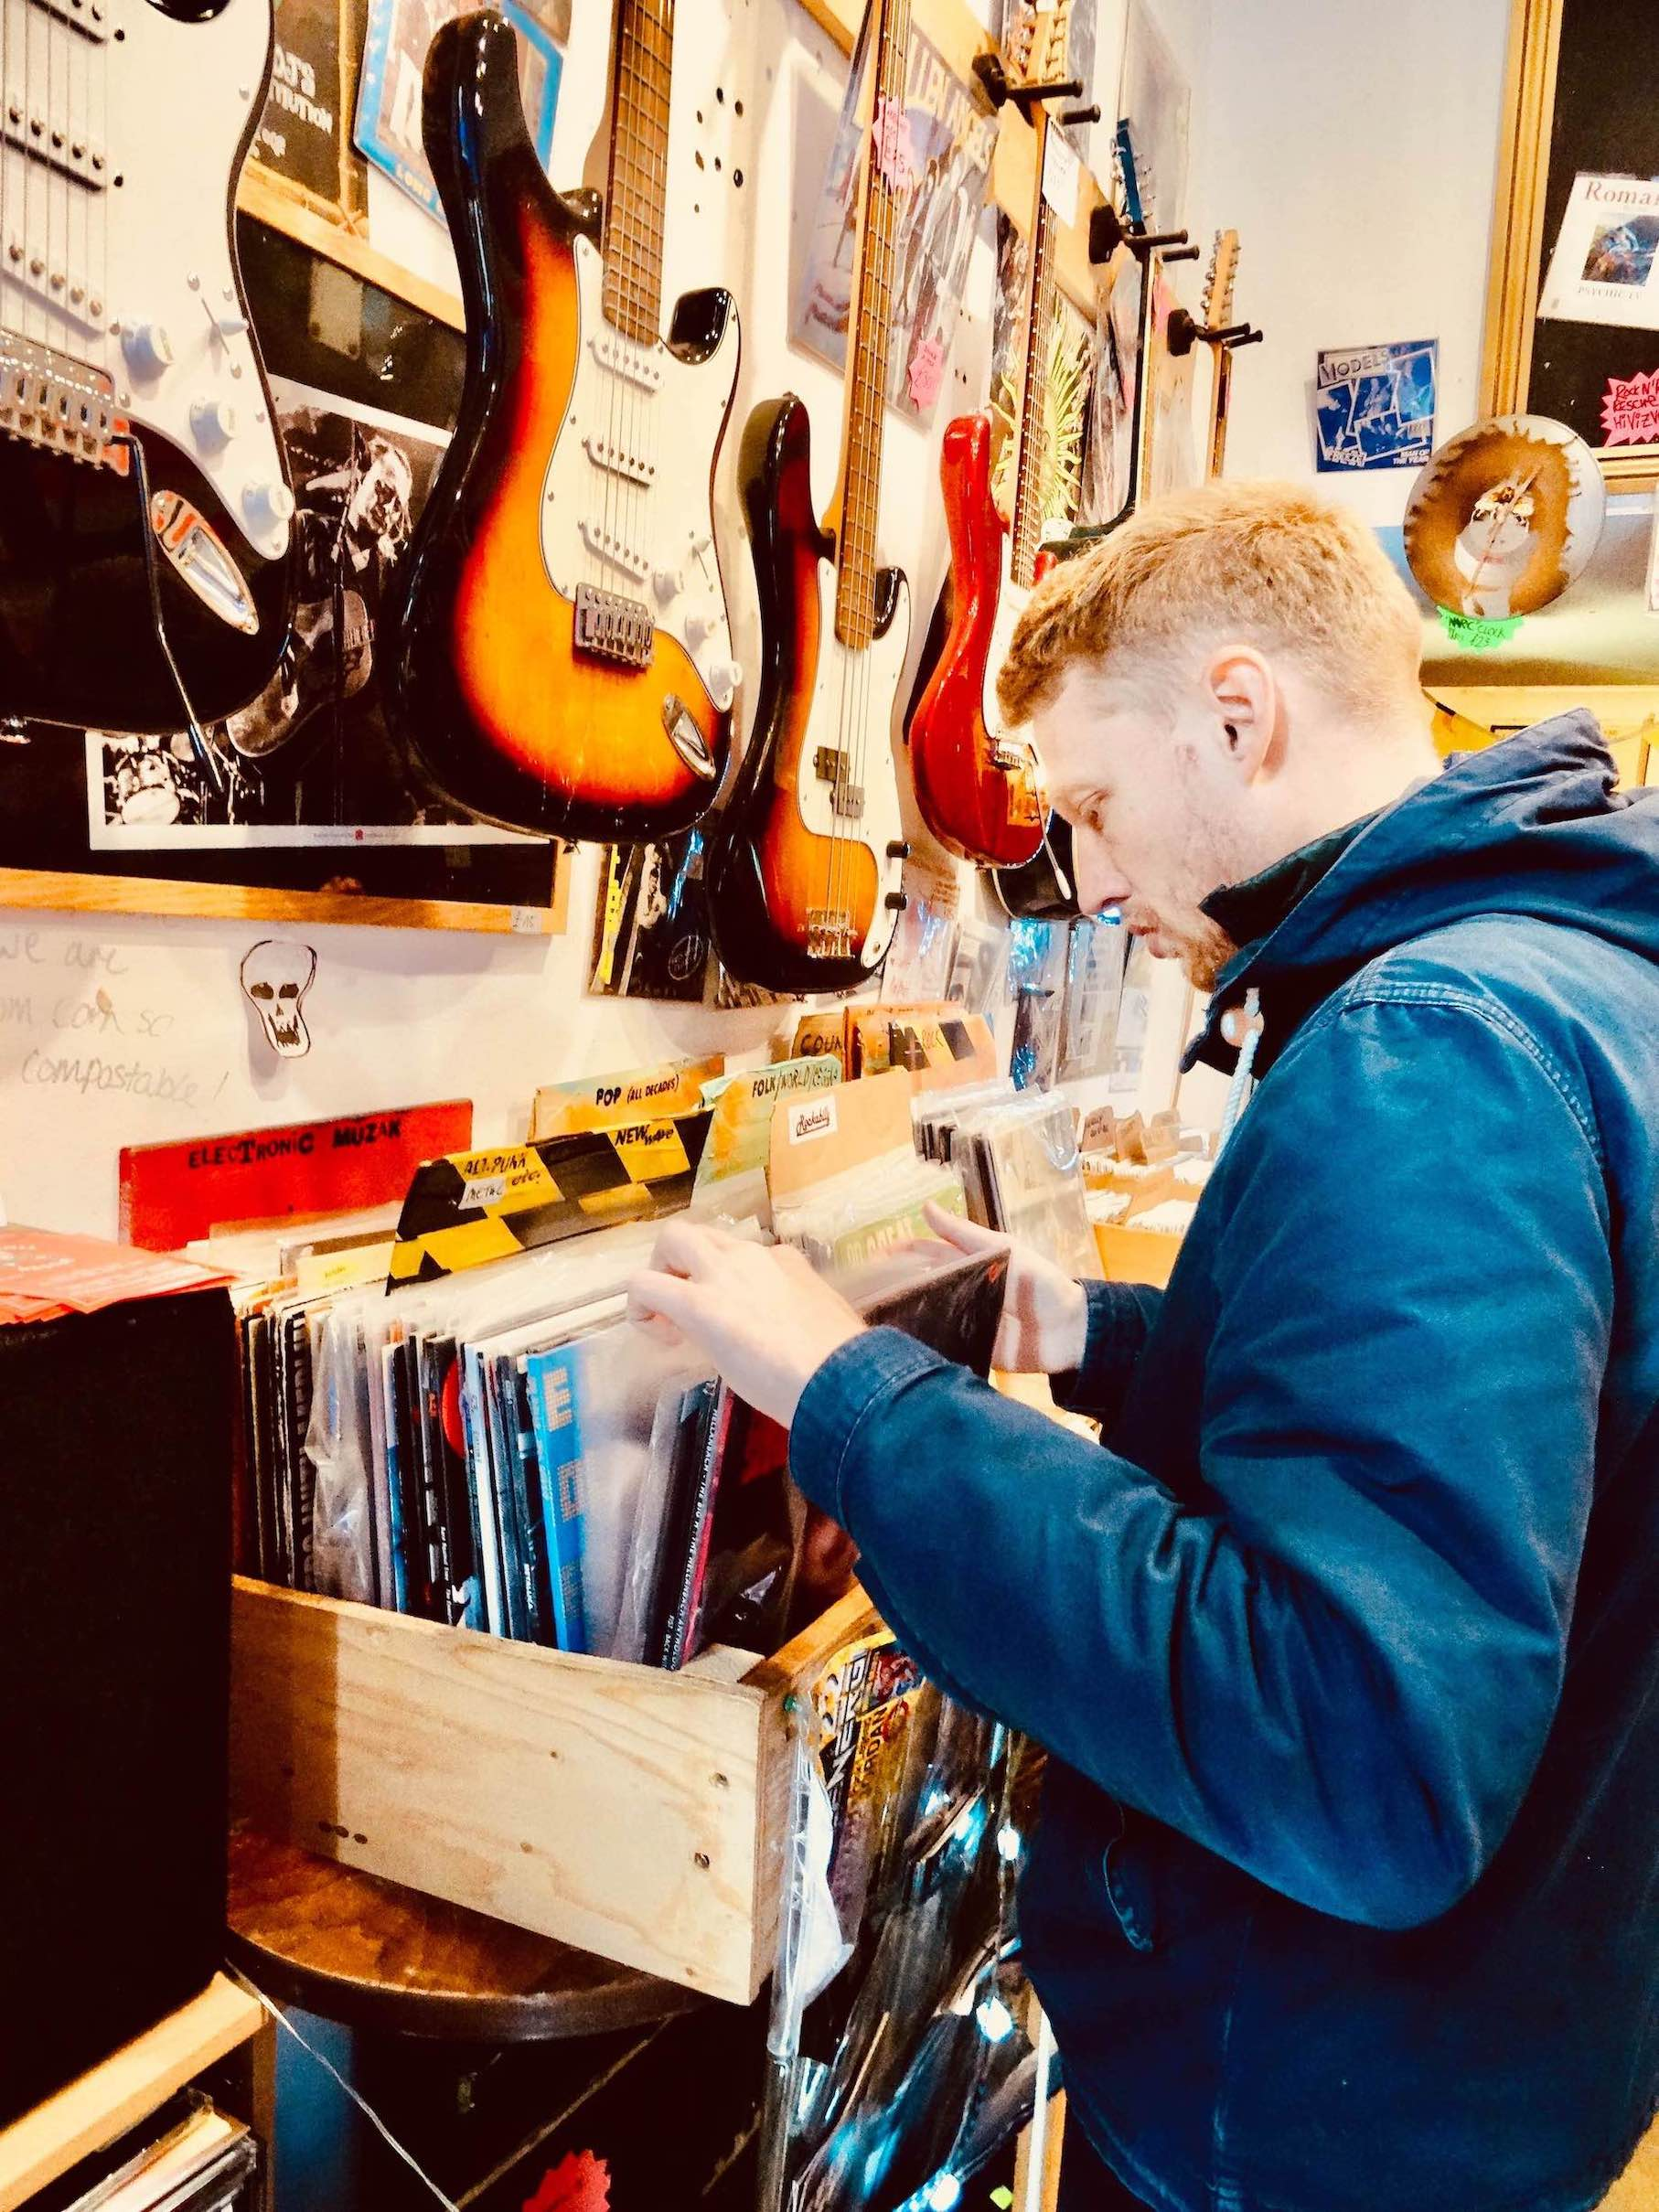 Browsing the vinyl at Rock 'n' Roll Rescue